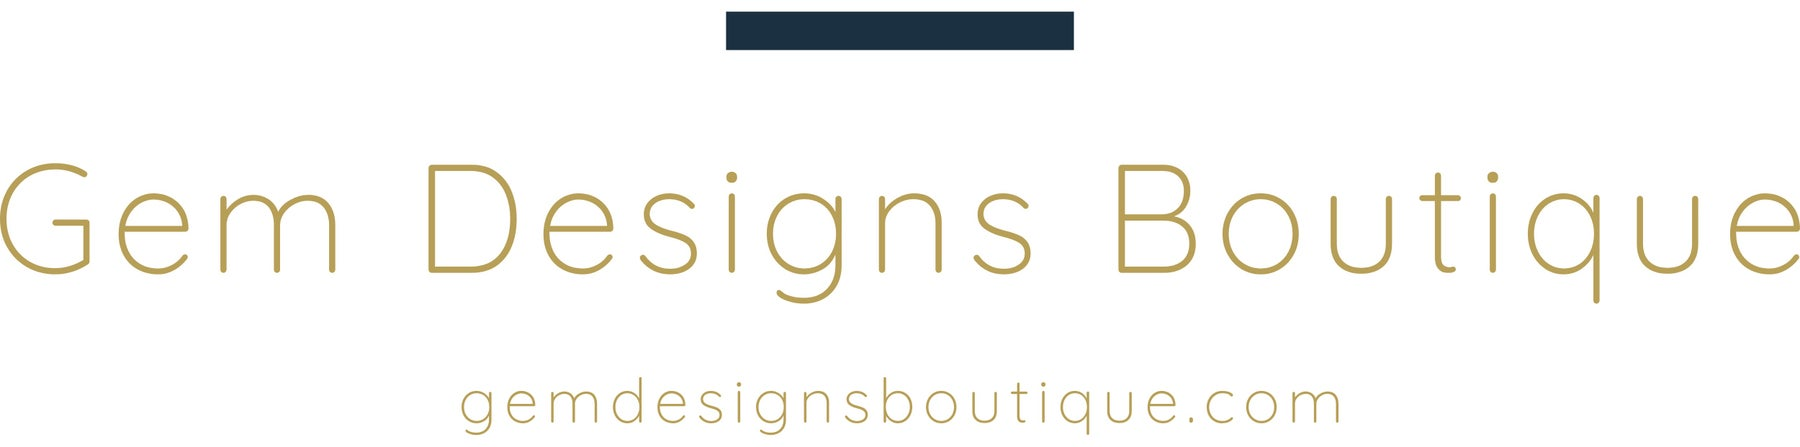 Gem Designs Boutique Home